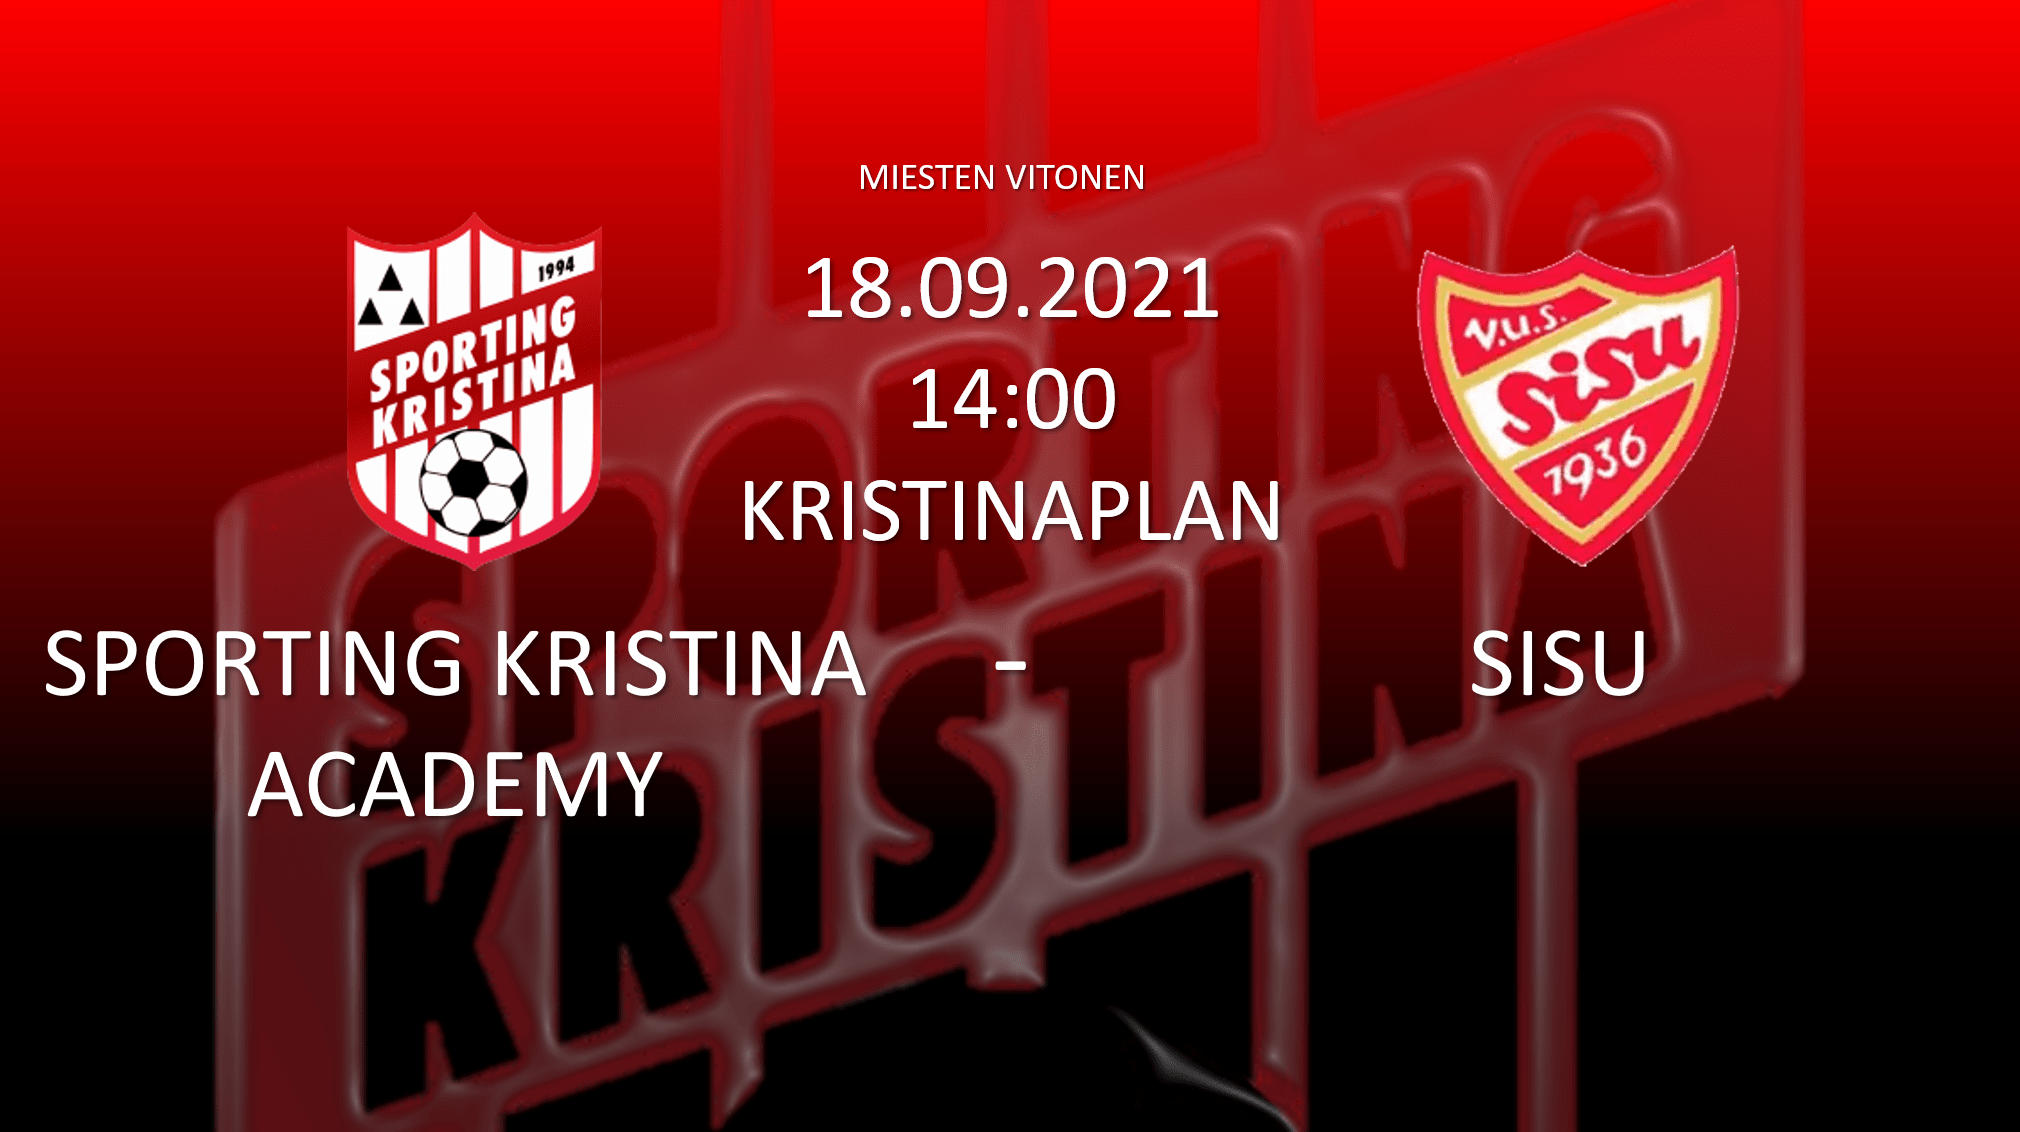 You are currently viewing Academy vs Sisu 18.09 kl. 14.00